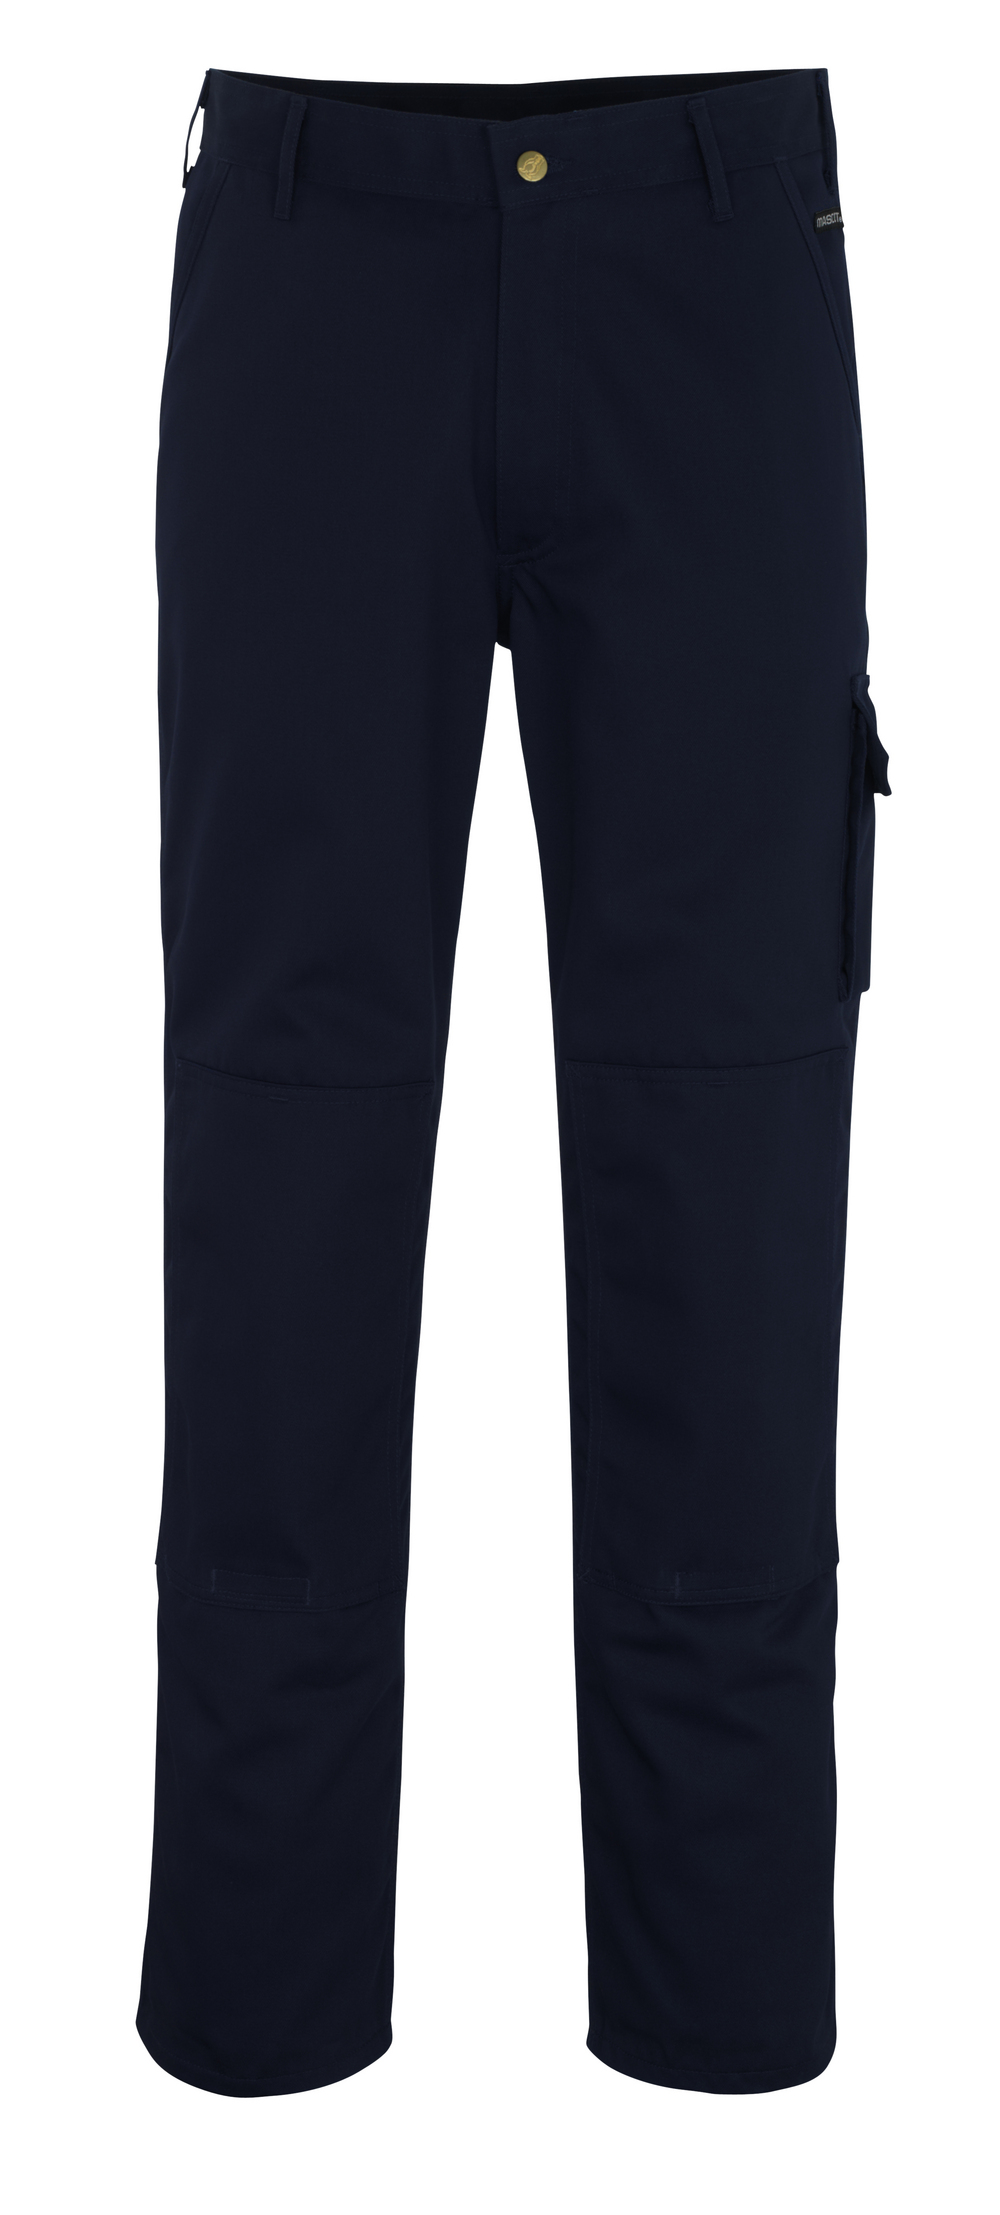 00279-430-01 Trousers with kneepad pockets - navy